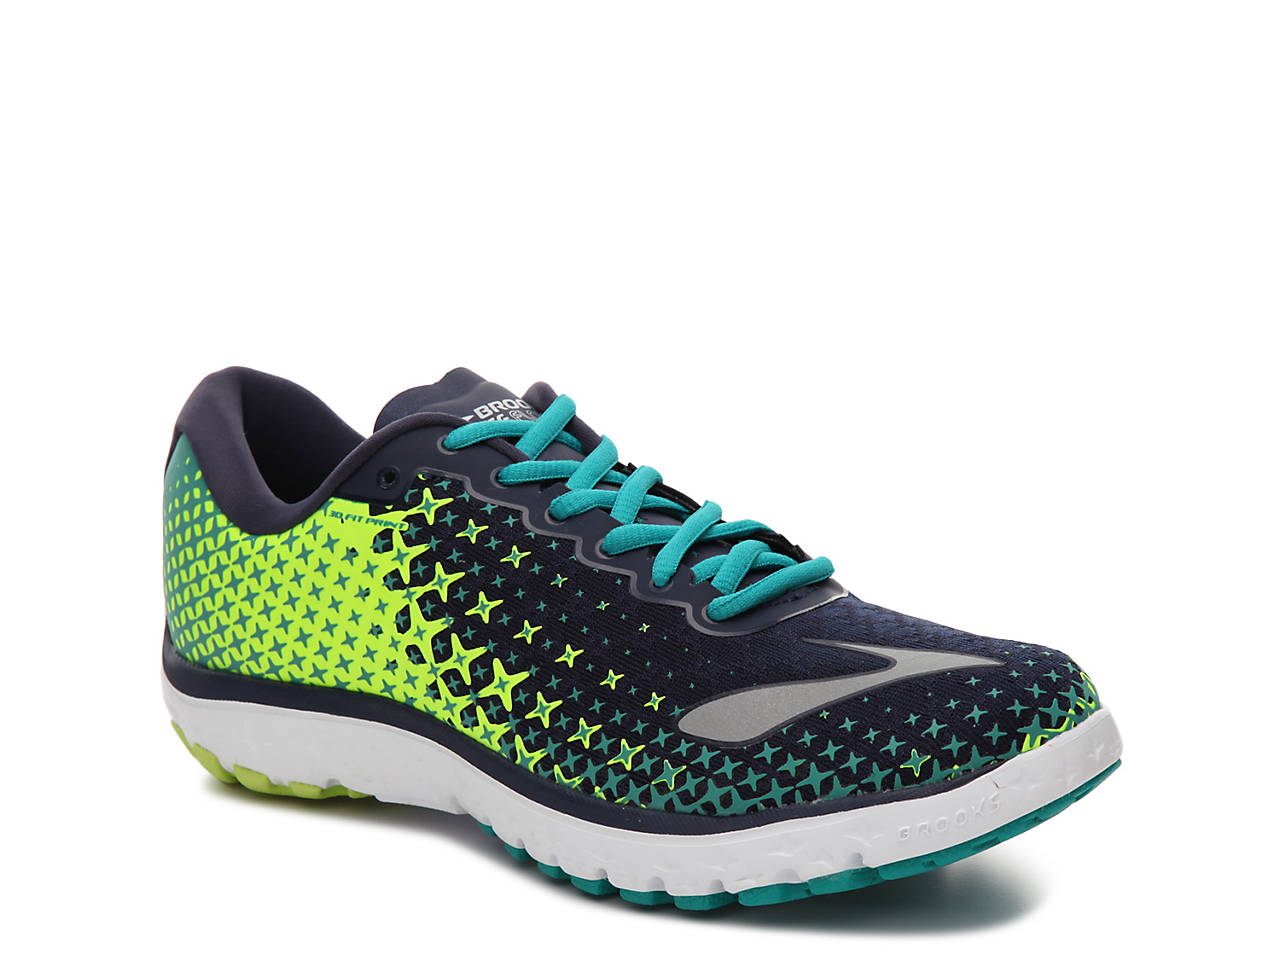 9e2d09089b2 Brooks PureFlow 5 Lightweight Running Shoe - Women s Women s Shoes